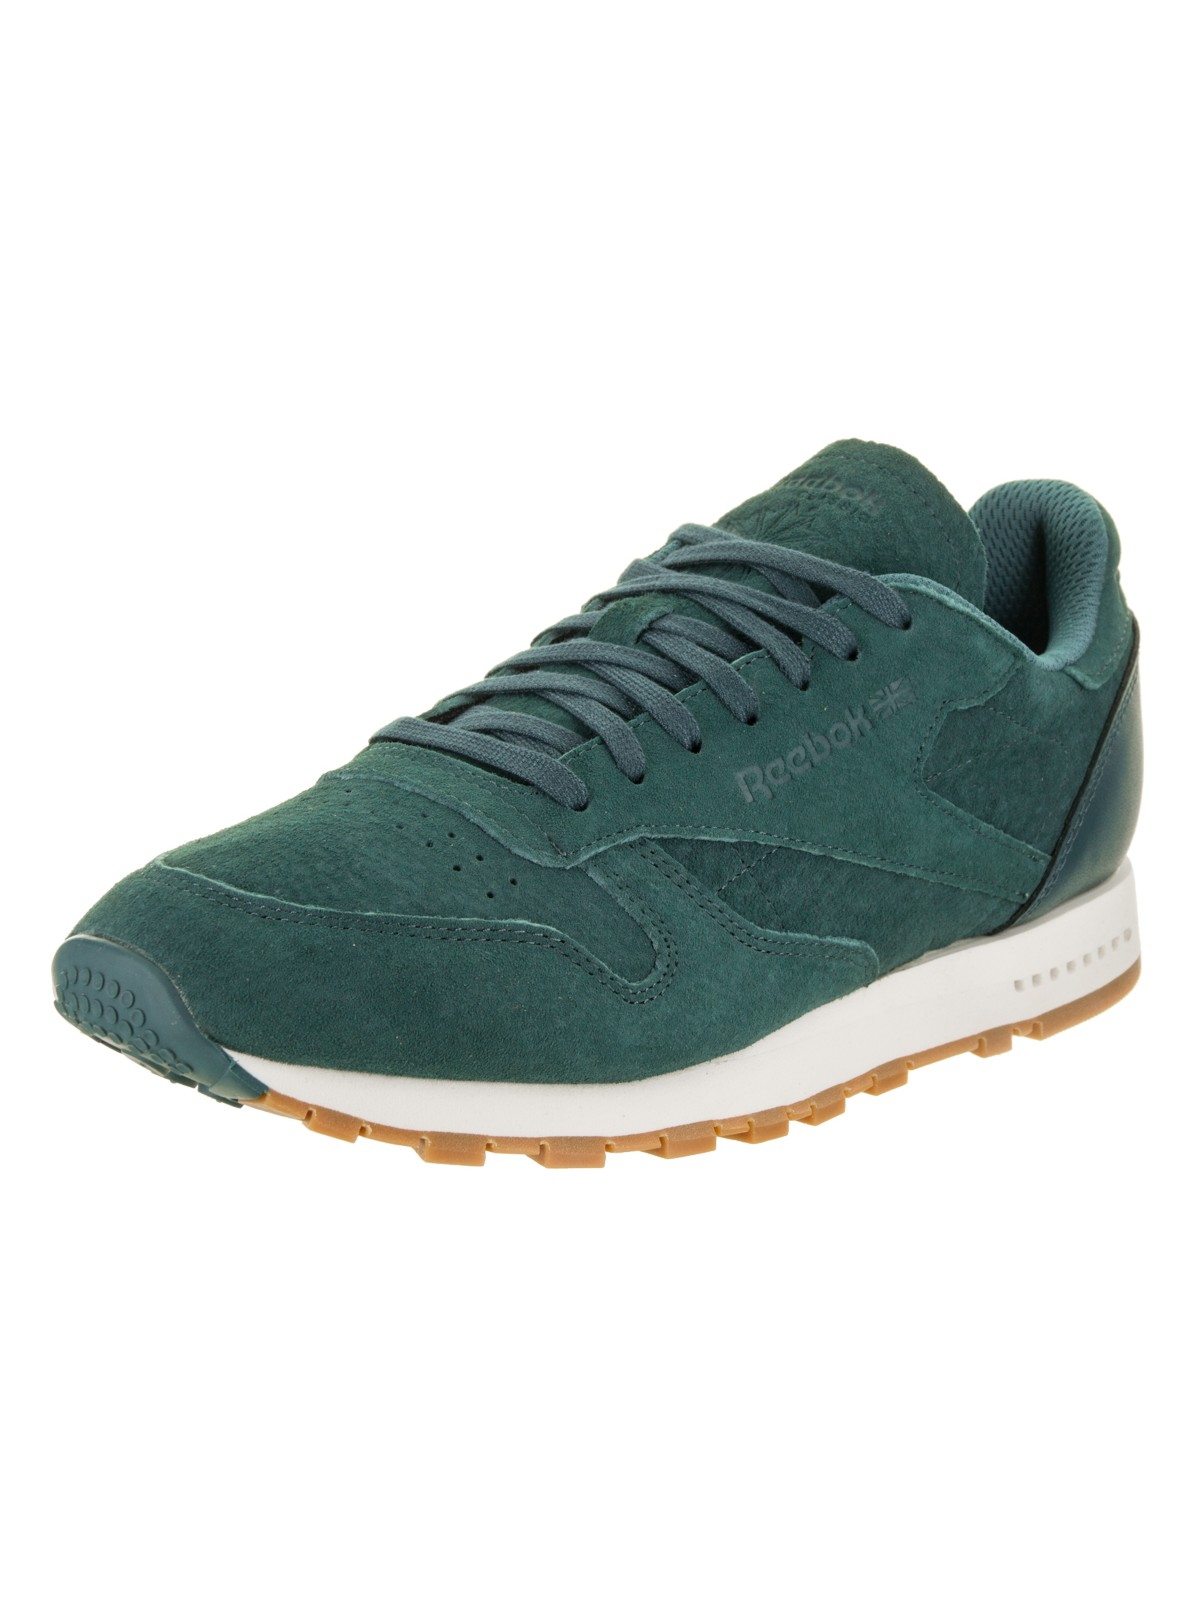 Reebok Men's Classic Leather SG Casual Shoe